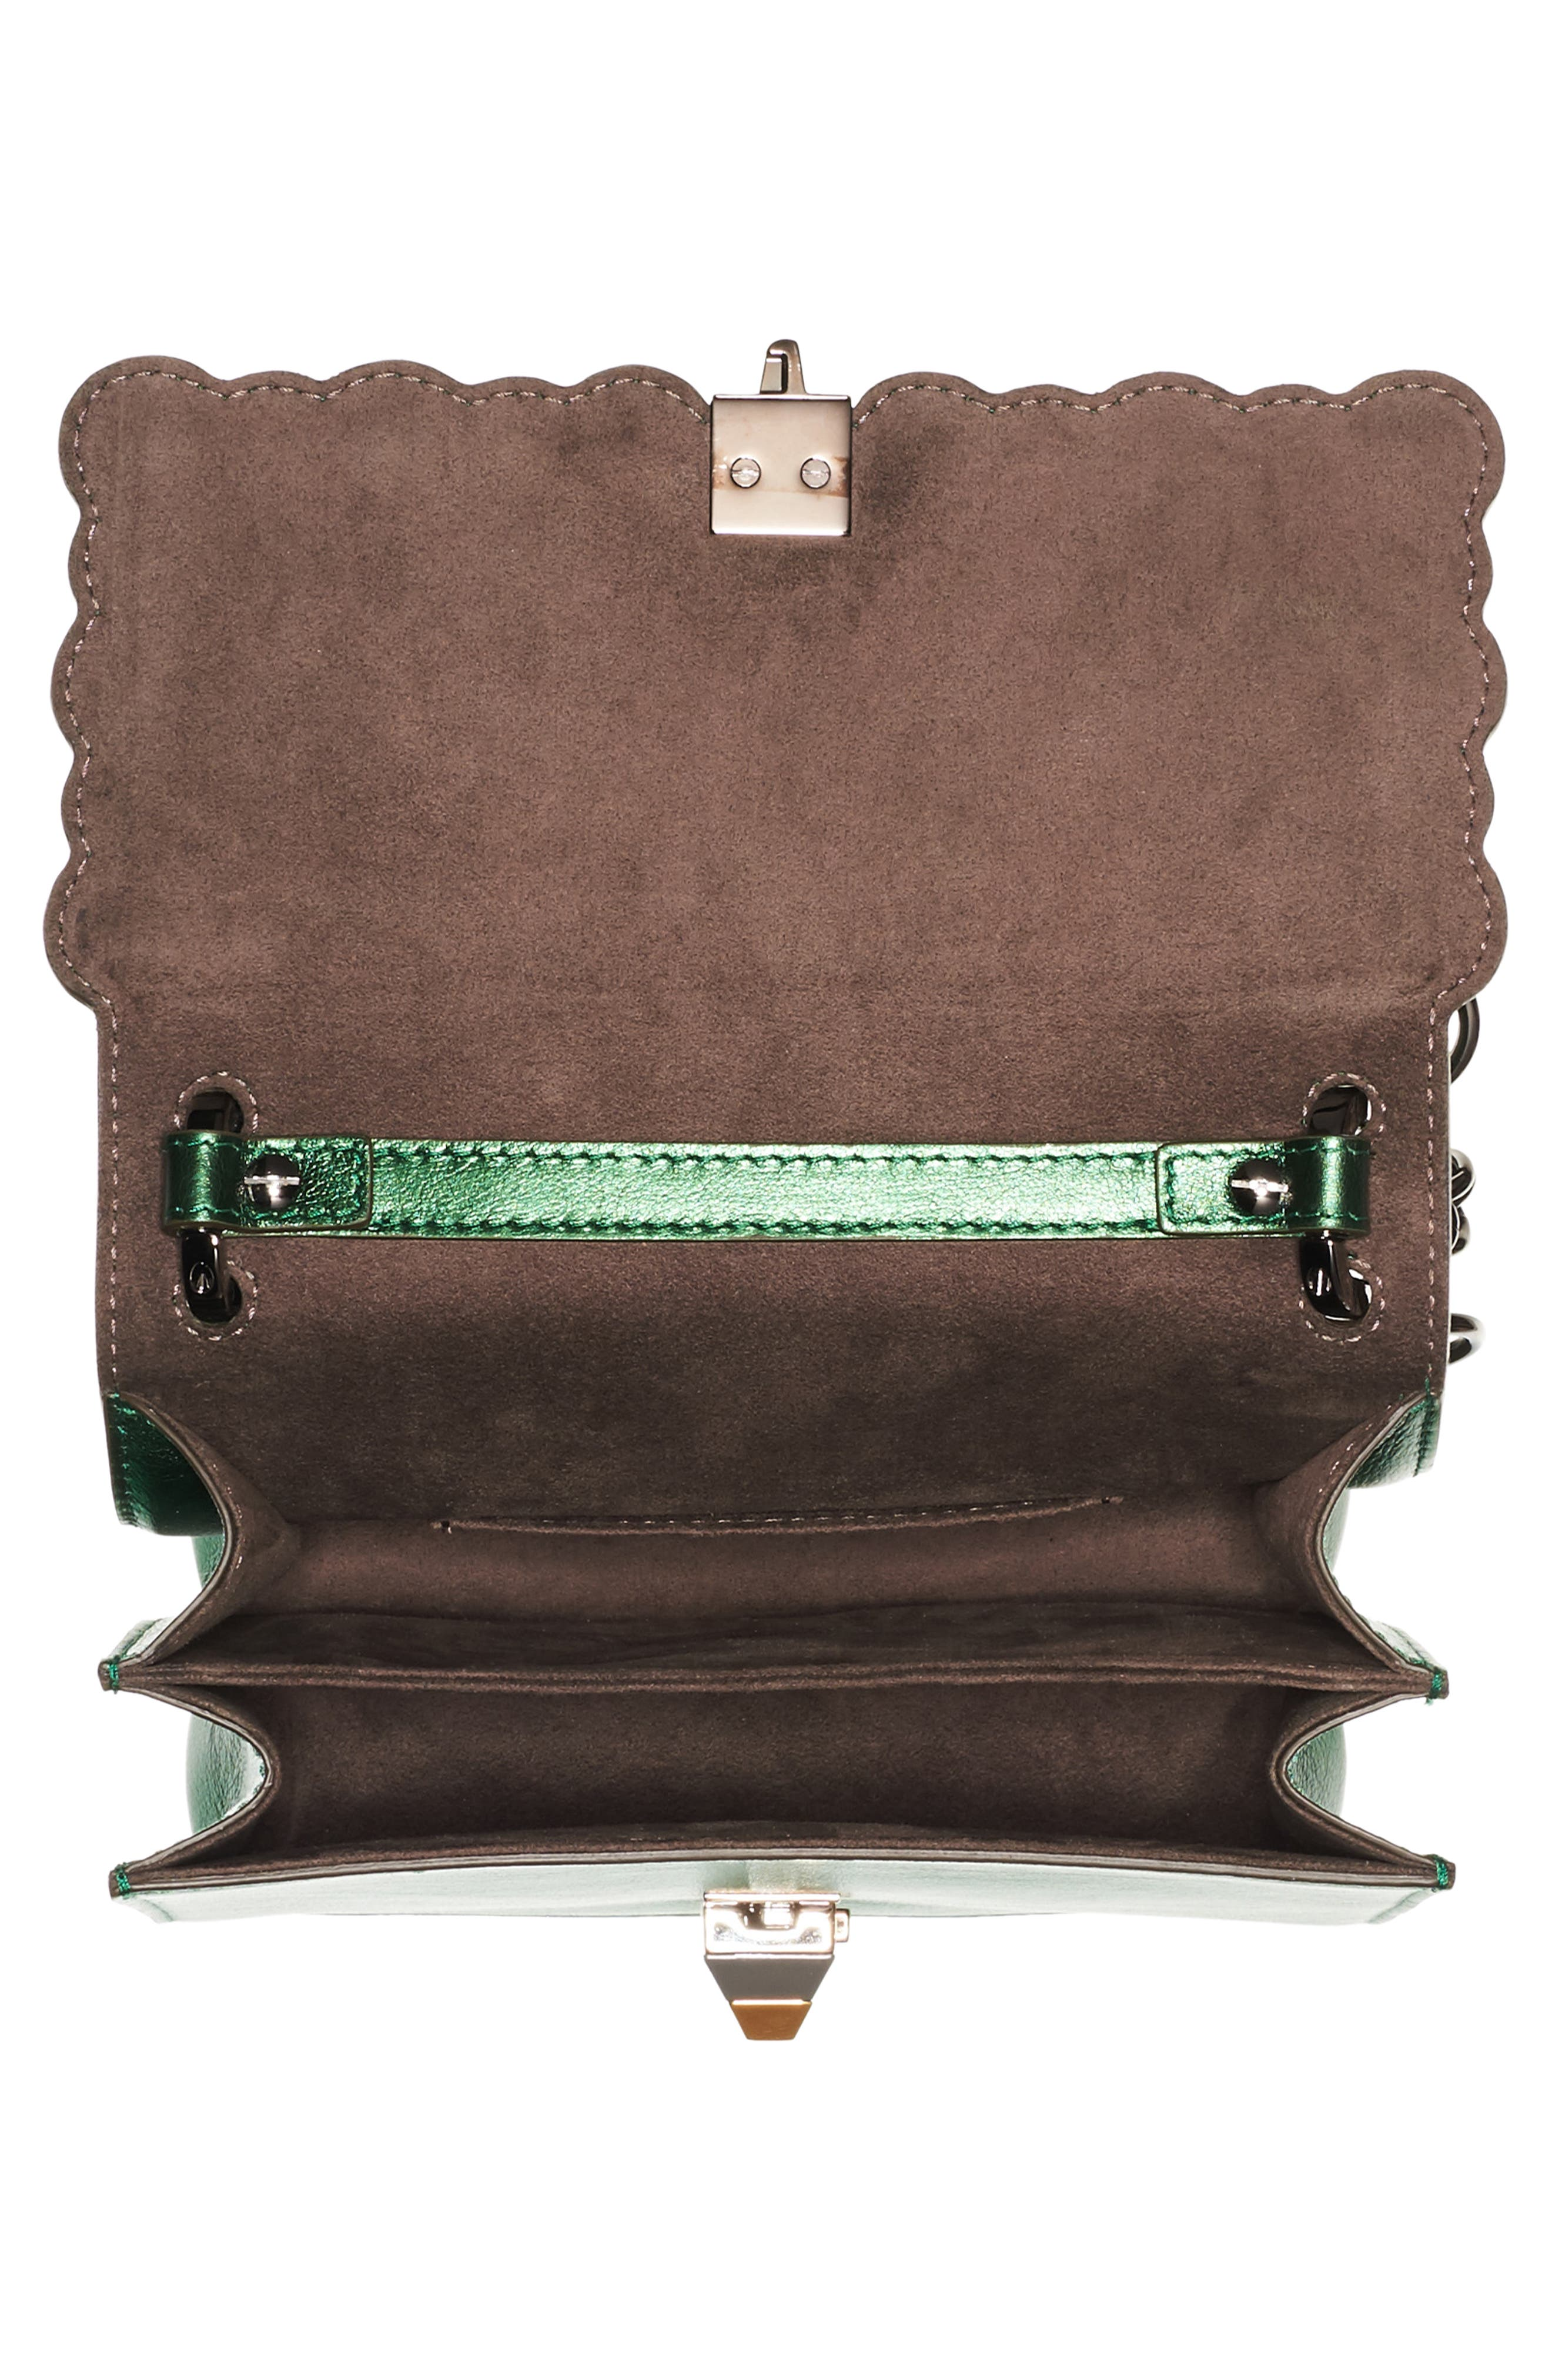 Small Kan I Metallic Leather Shoulder Bag,                             Alternate thumbnail 3, color,                             Green Metallic